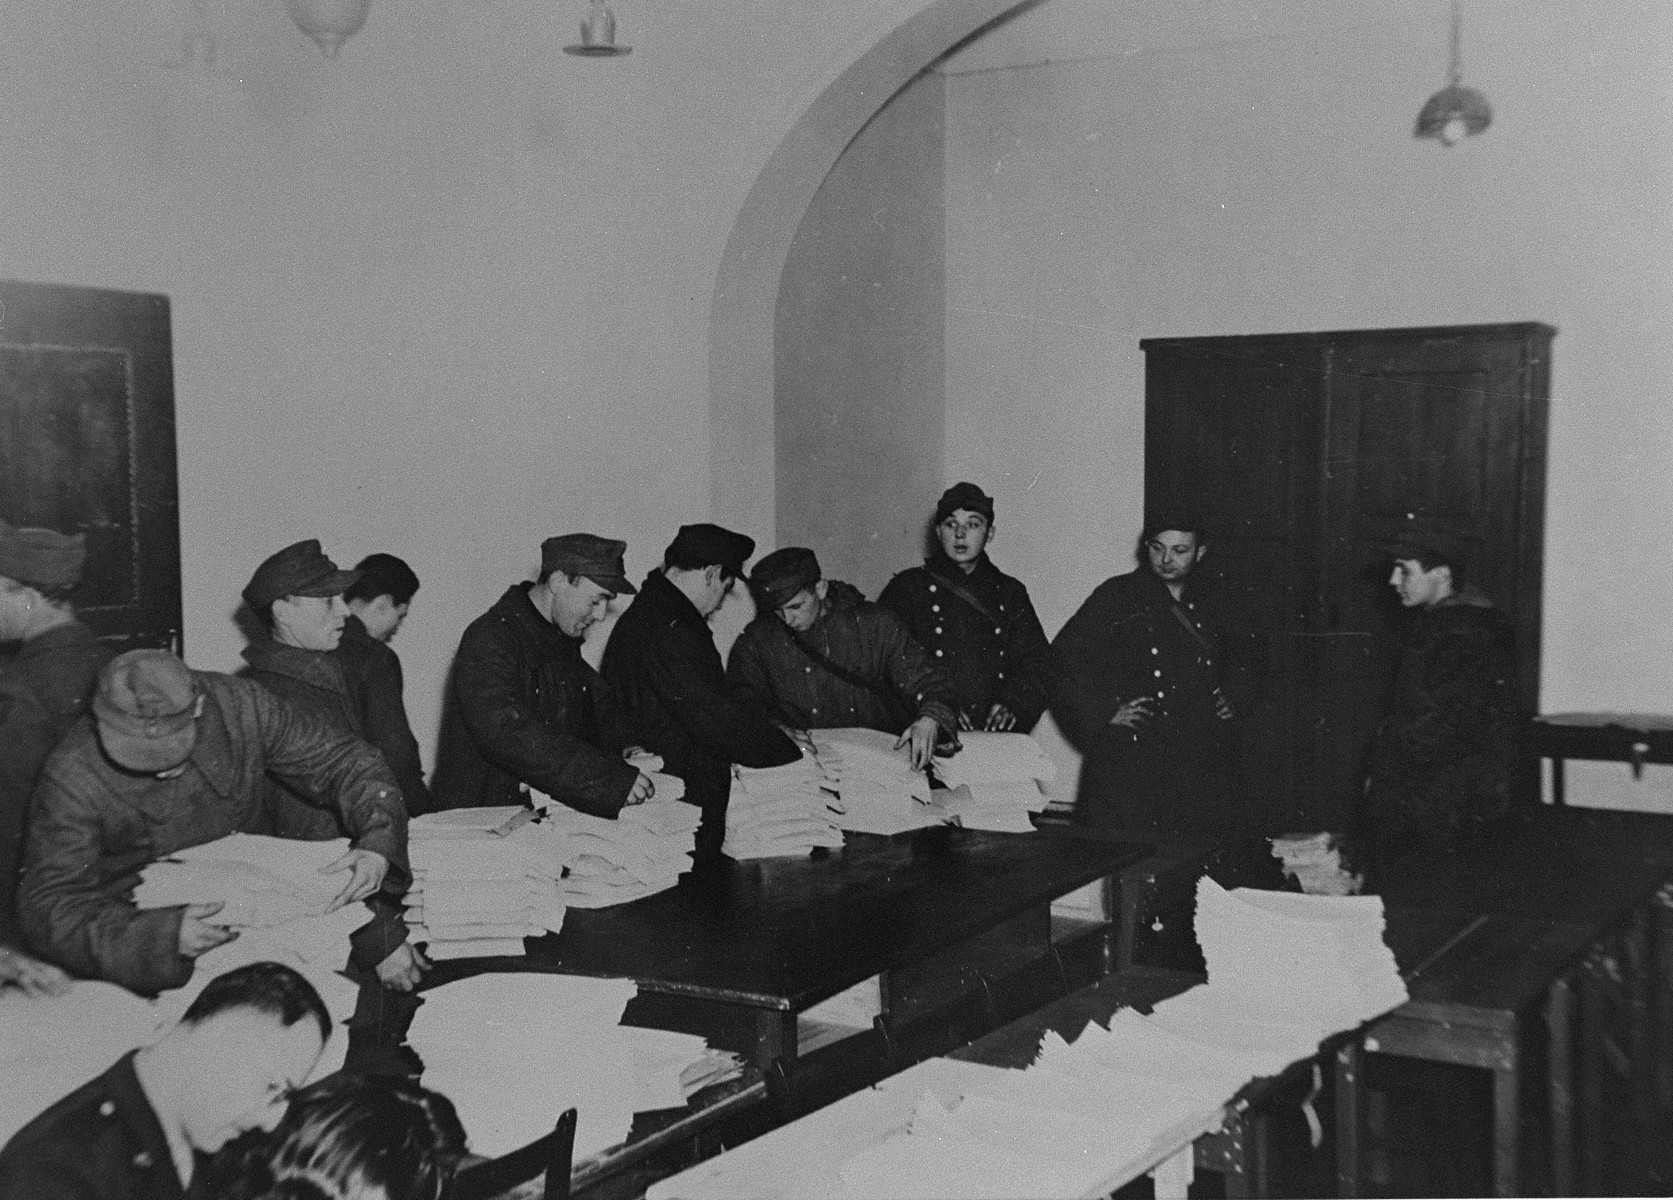 Former SS members are made to sort through captured records that will be presented as evidence before the International Military Tribunal war crimels trial at Nuremberg.